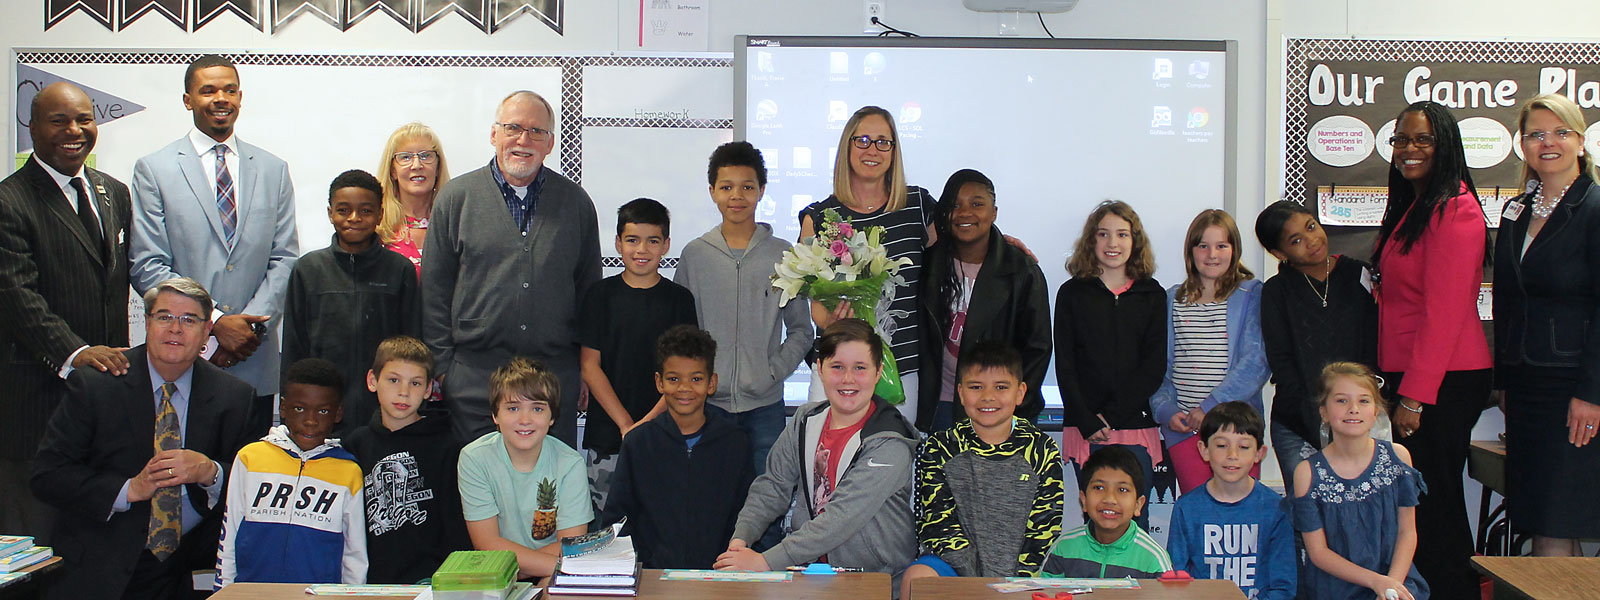 Teacher of the Year, Mrs. Tkacik, with students and administrators